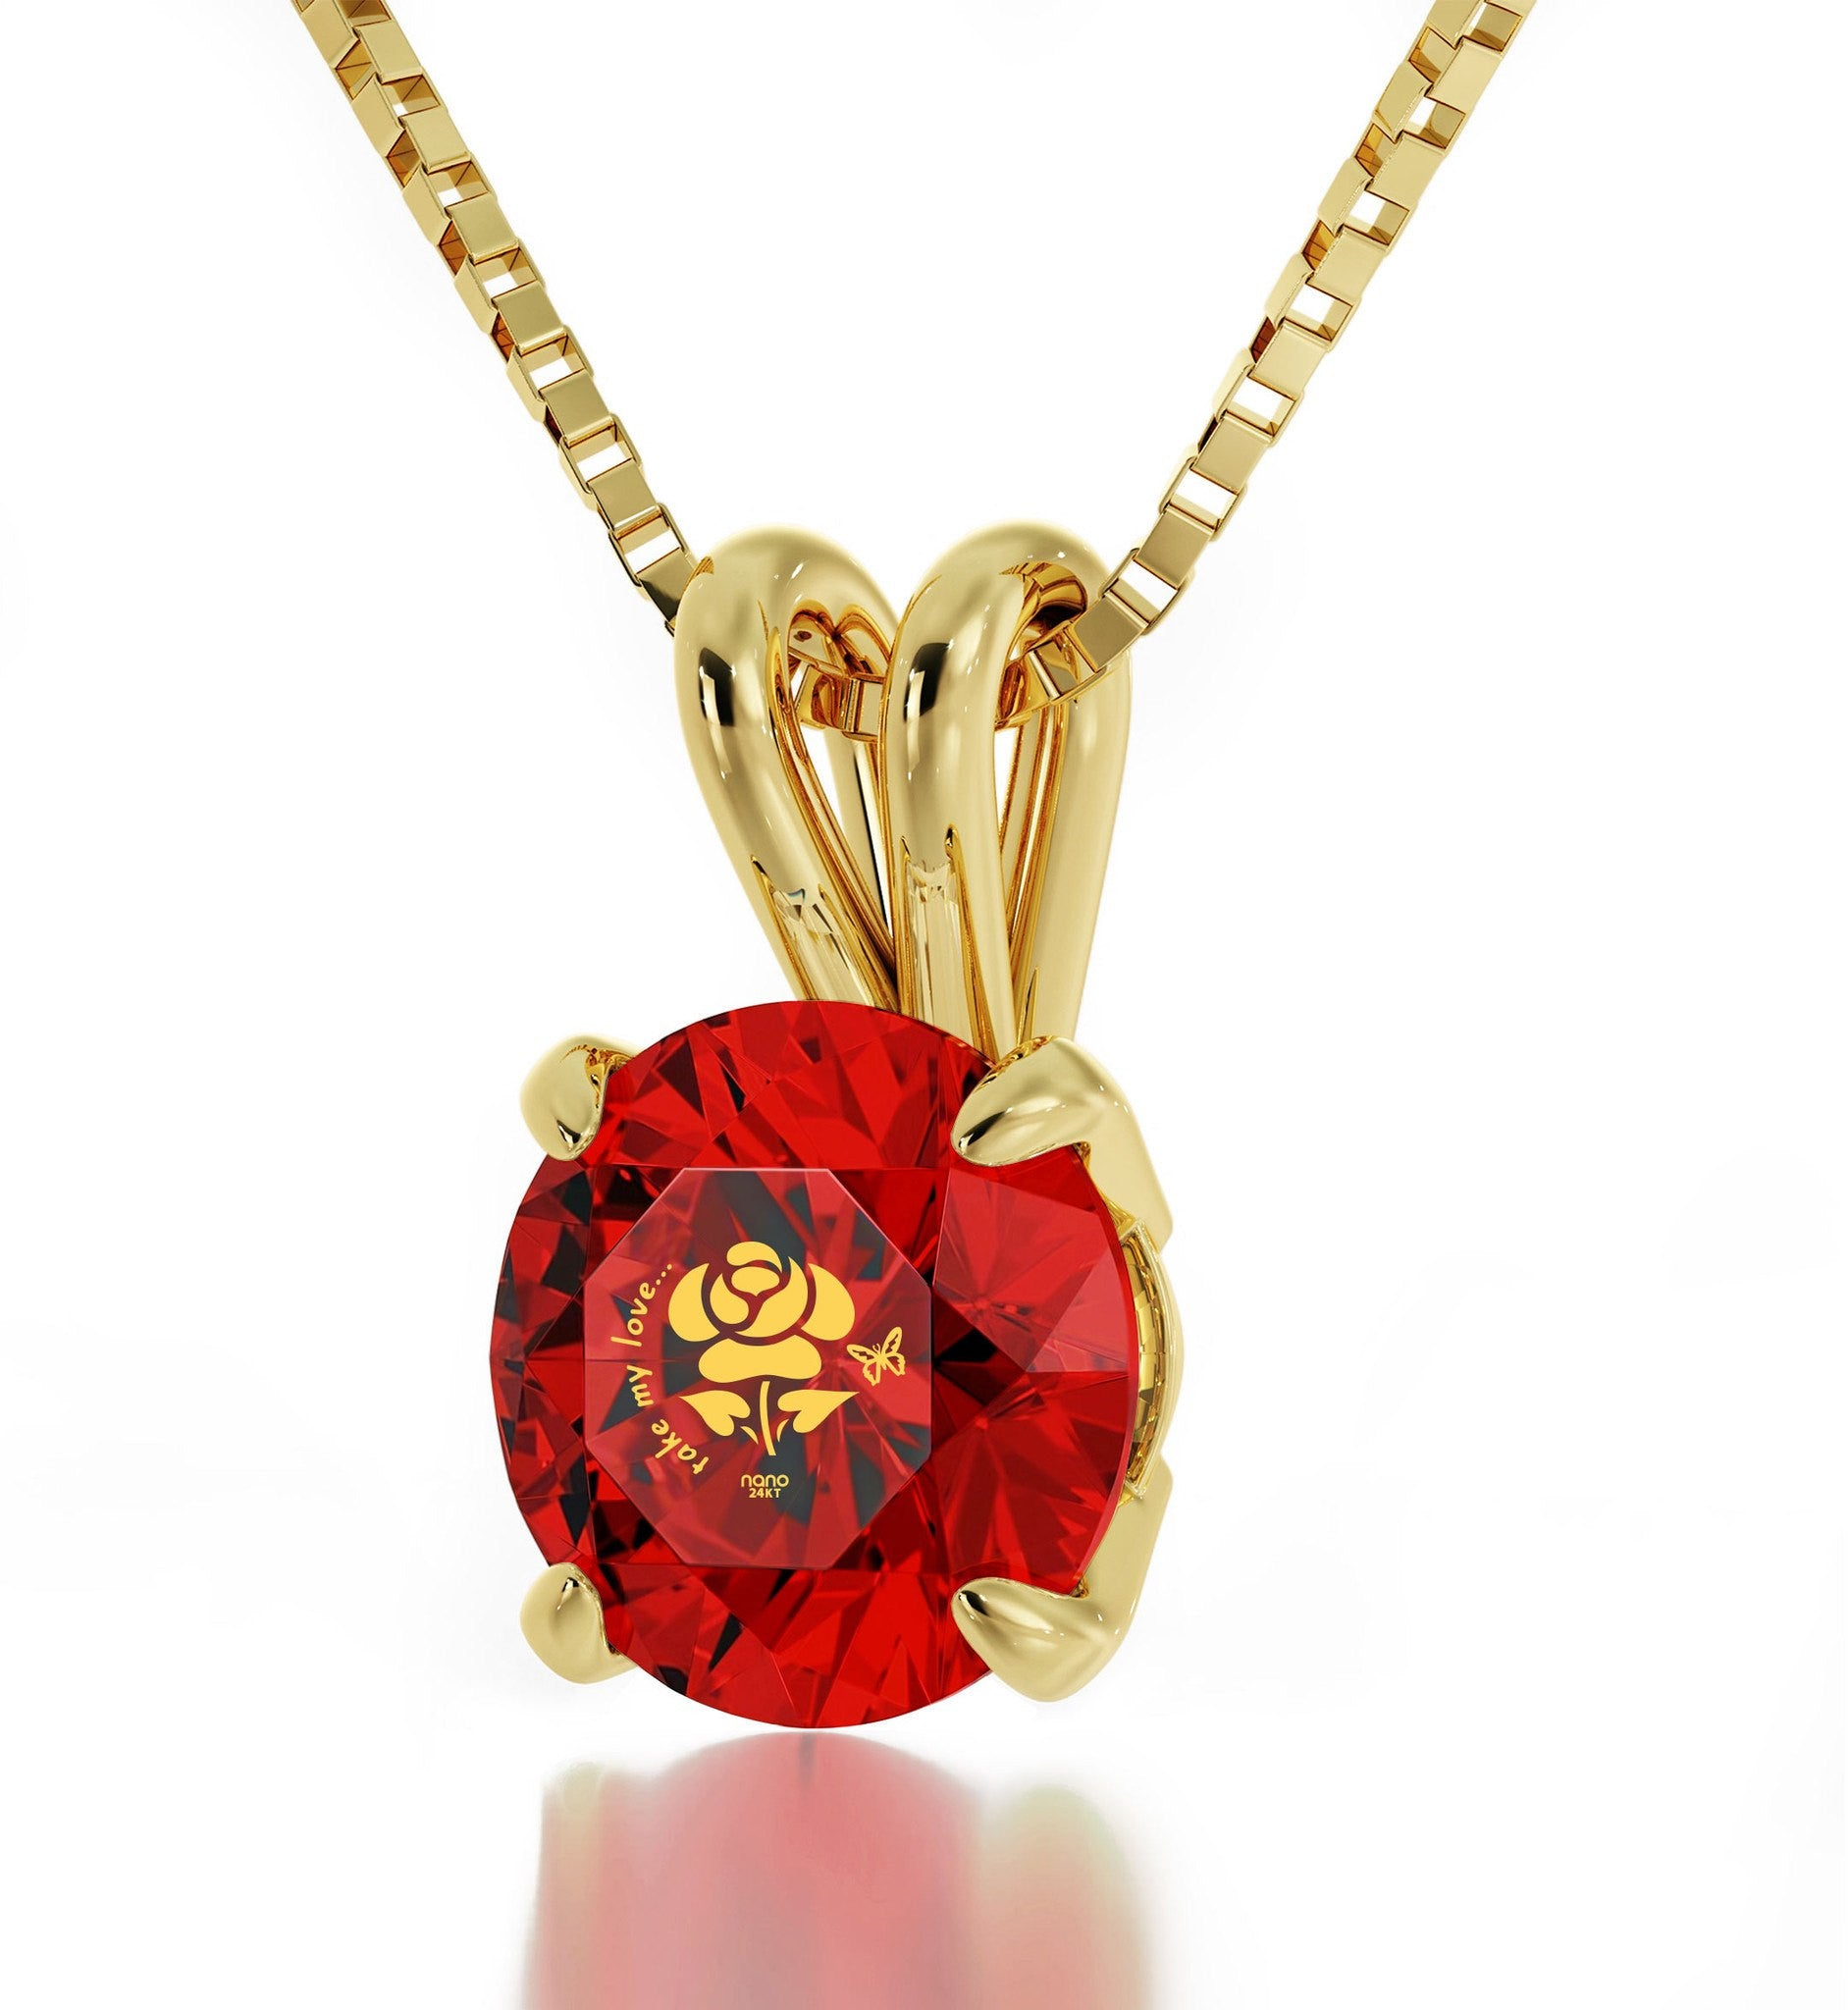 """Top Gifts for Wife, Unusual Red Stone Charm on 14k Gold Chain, Christmas Present Ideas for Her, by Nano Jewelry"""